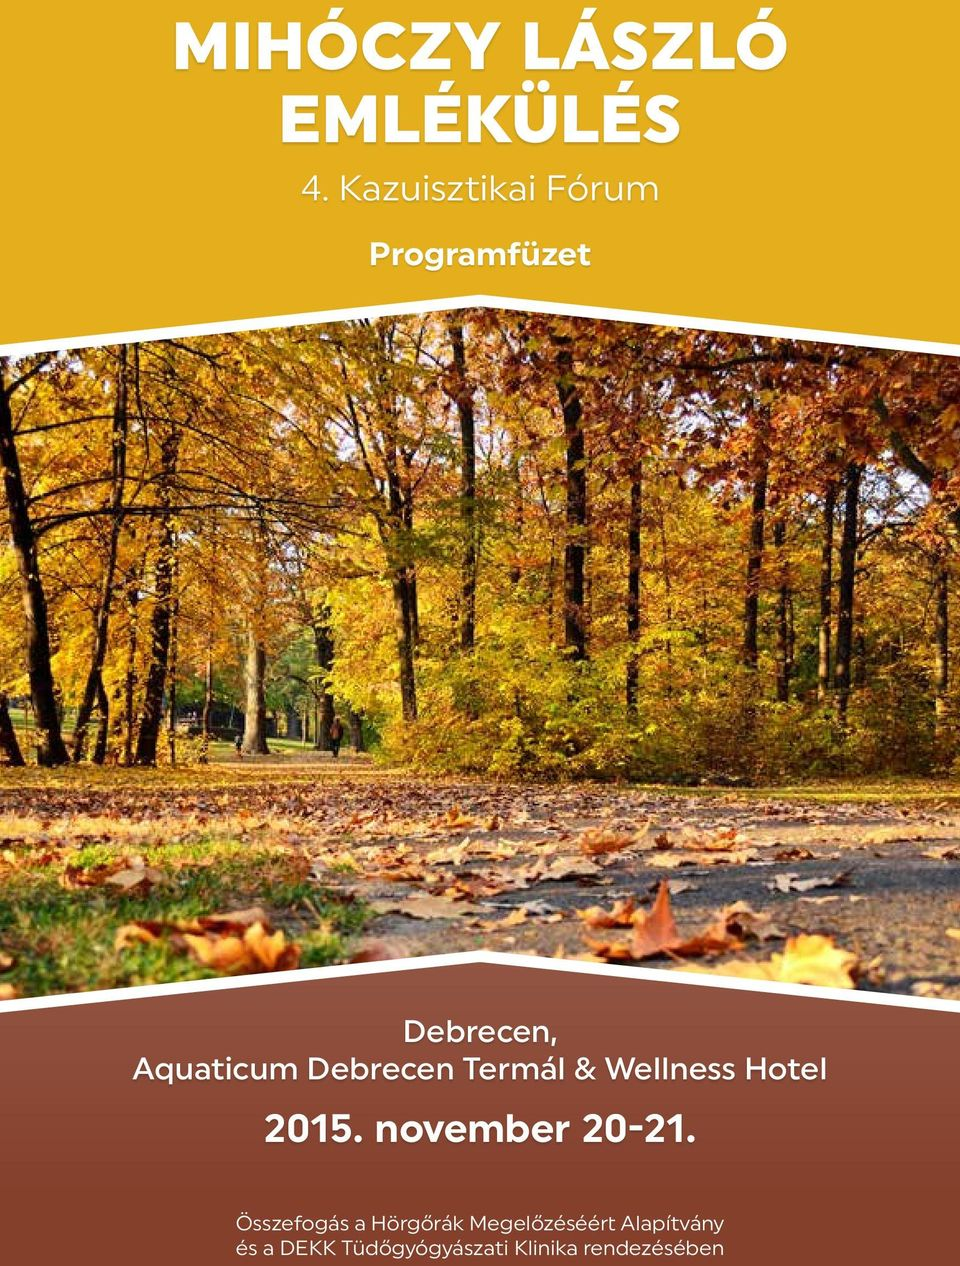 Debrecen Termál & Wellness Hotel 2015. november 20-21.